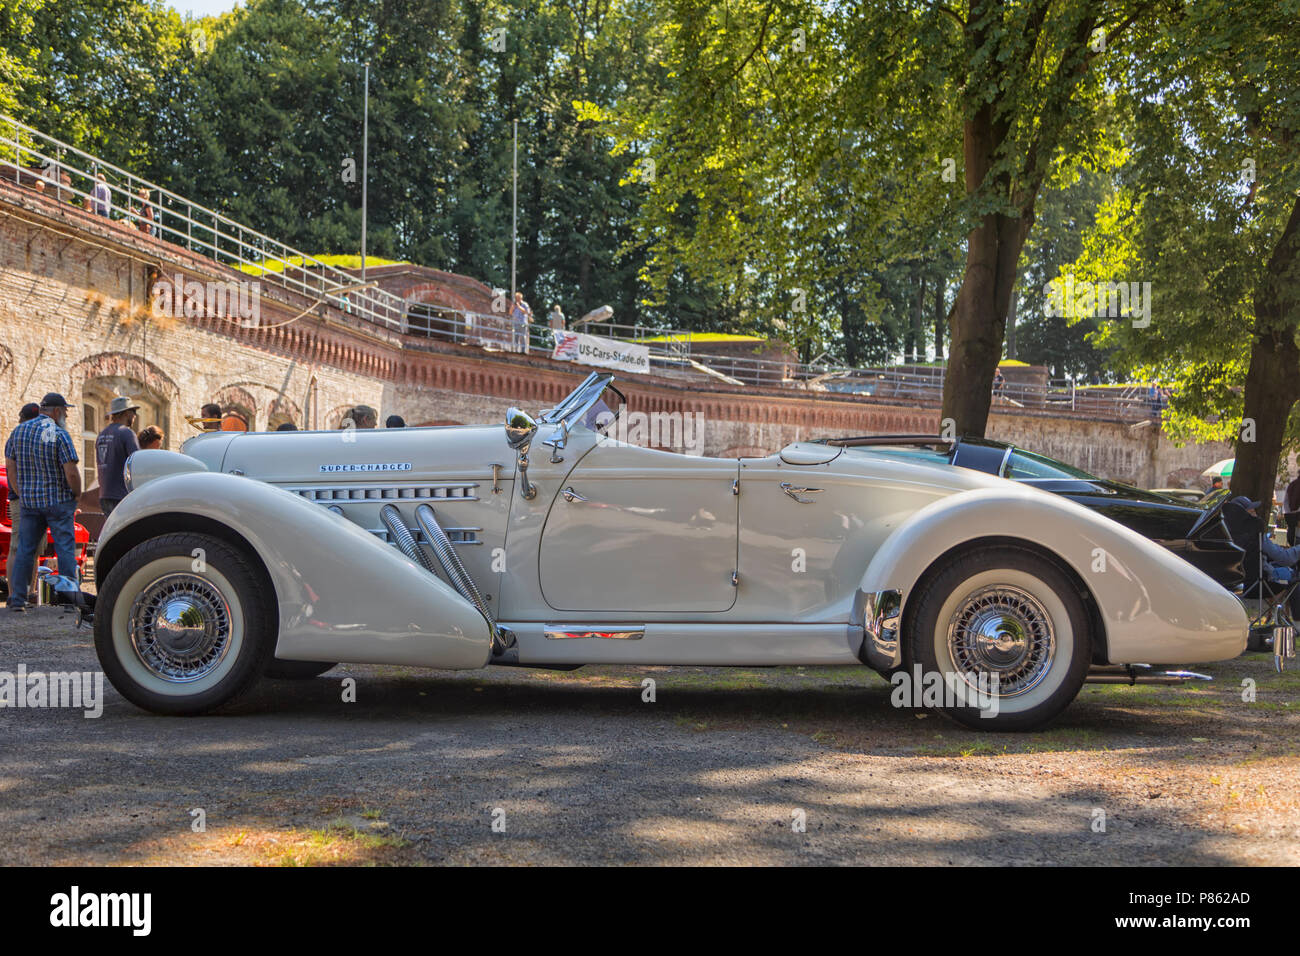 Stade, Germany - July 8, 2018: A vintage 1936 Auburn Speedster Boattail Super-Charged at 5th Summertime Drive US car meeting. - Stock Image